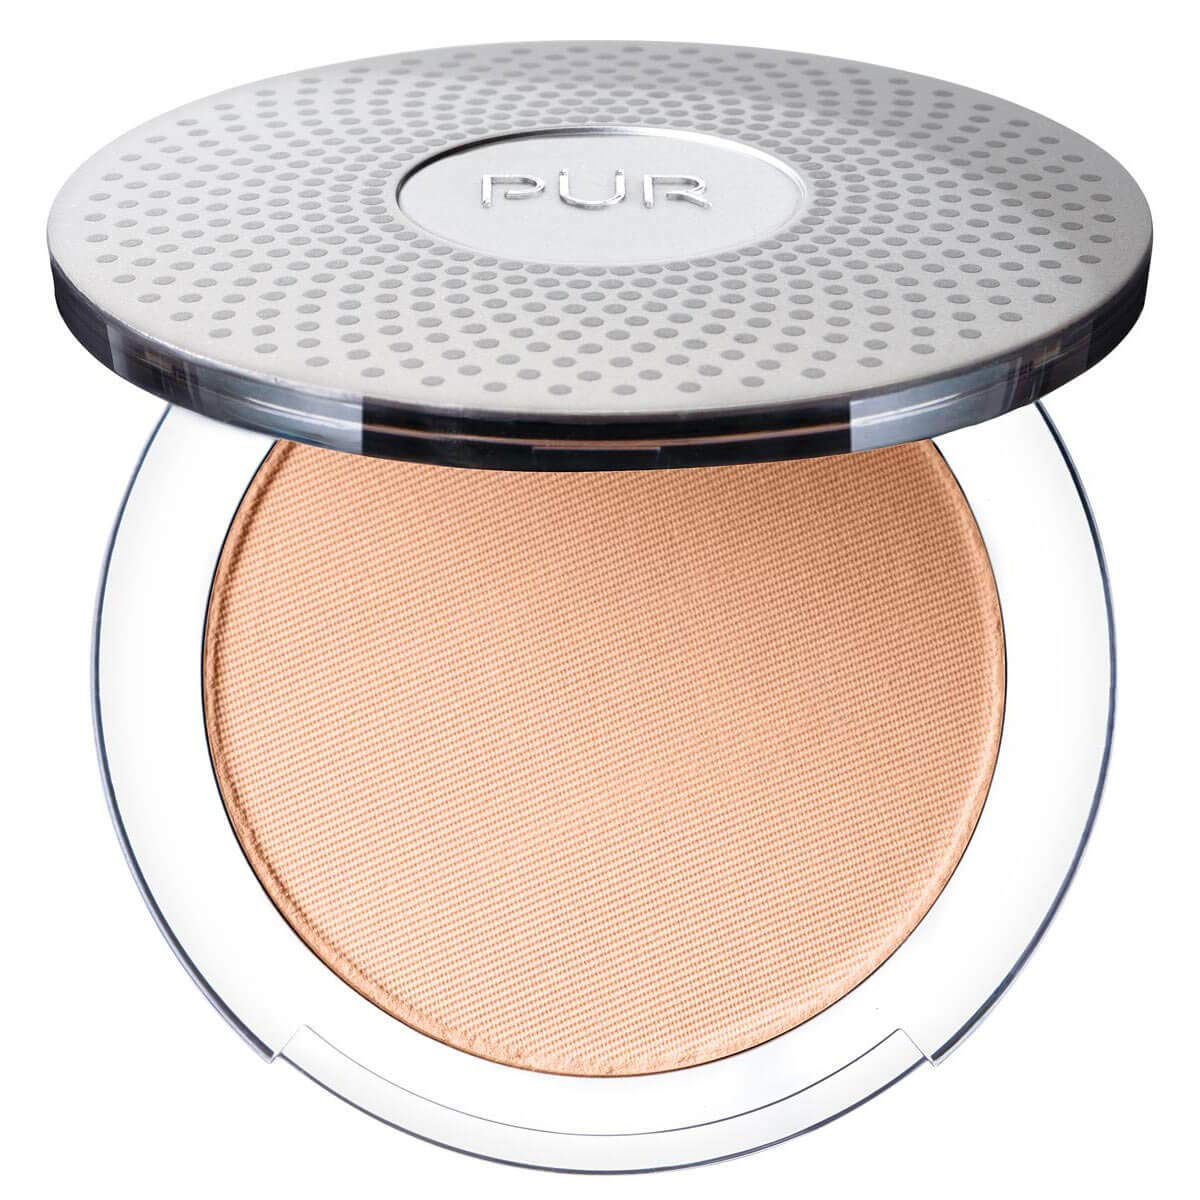 PÜR 4-in-1 Pressed Mineral Makeup with Skincare Ingredients in Blush Medium: Premium Beauty